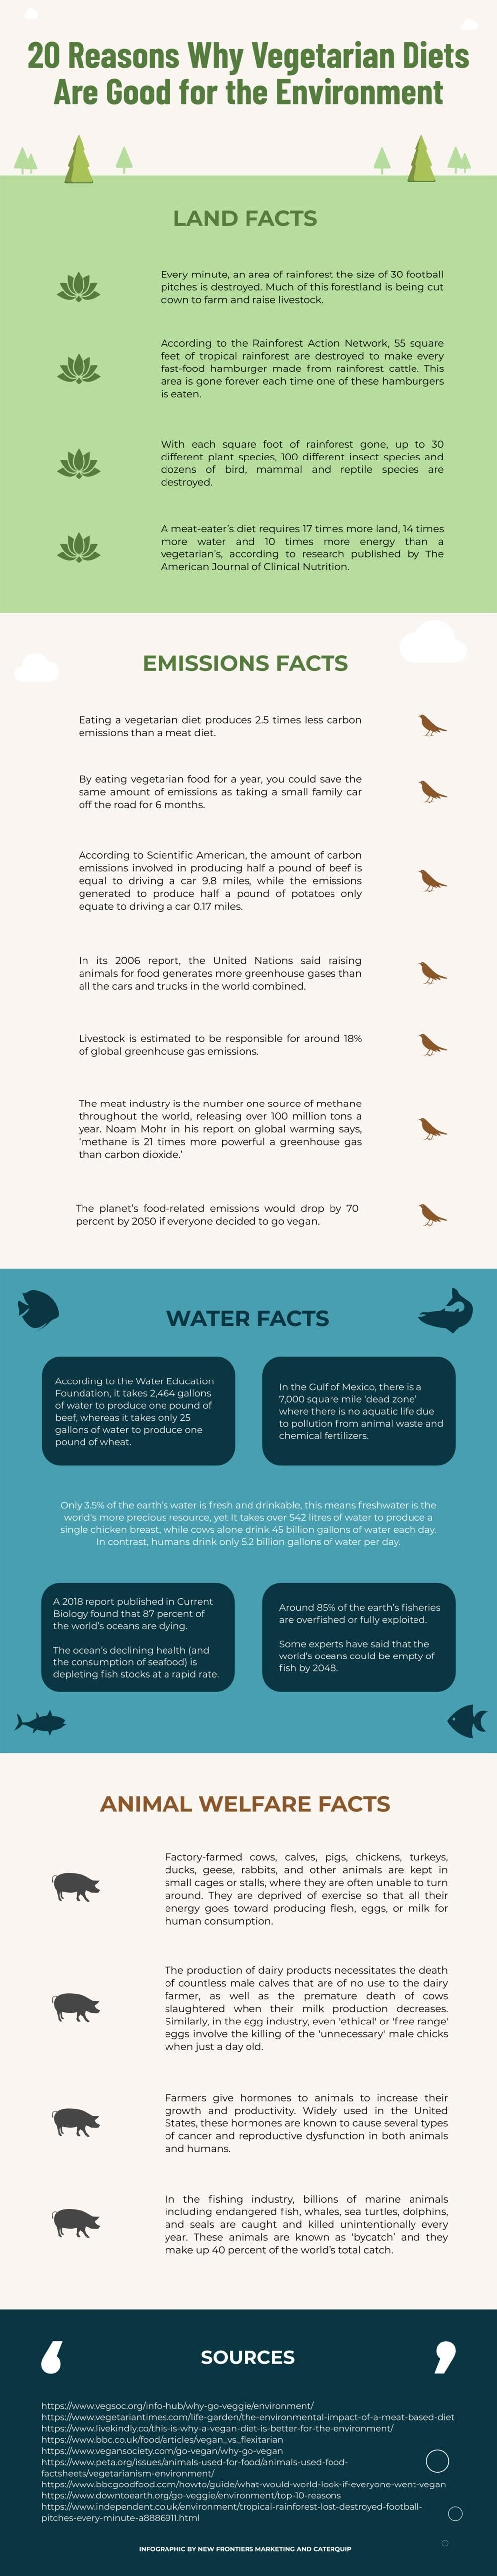 20 Reasons Why Vegetarian Diets Are Good For The Environment #infographic